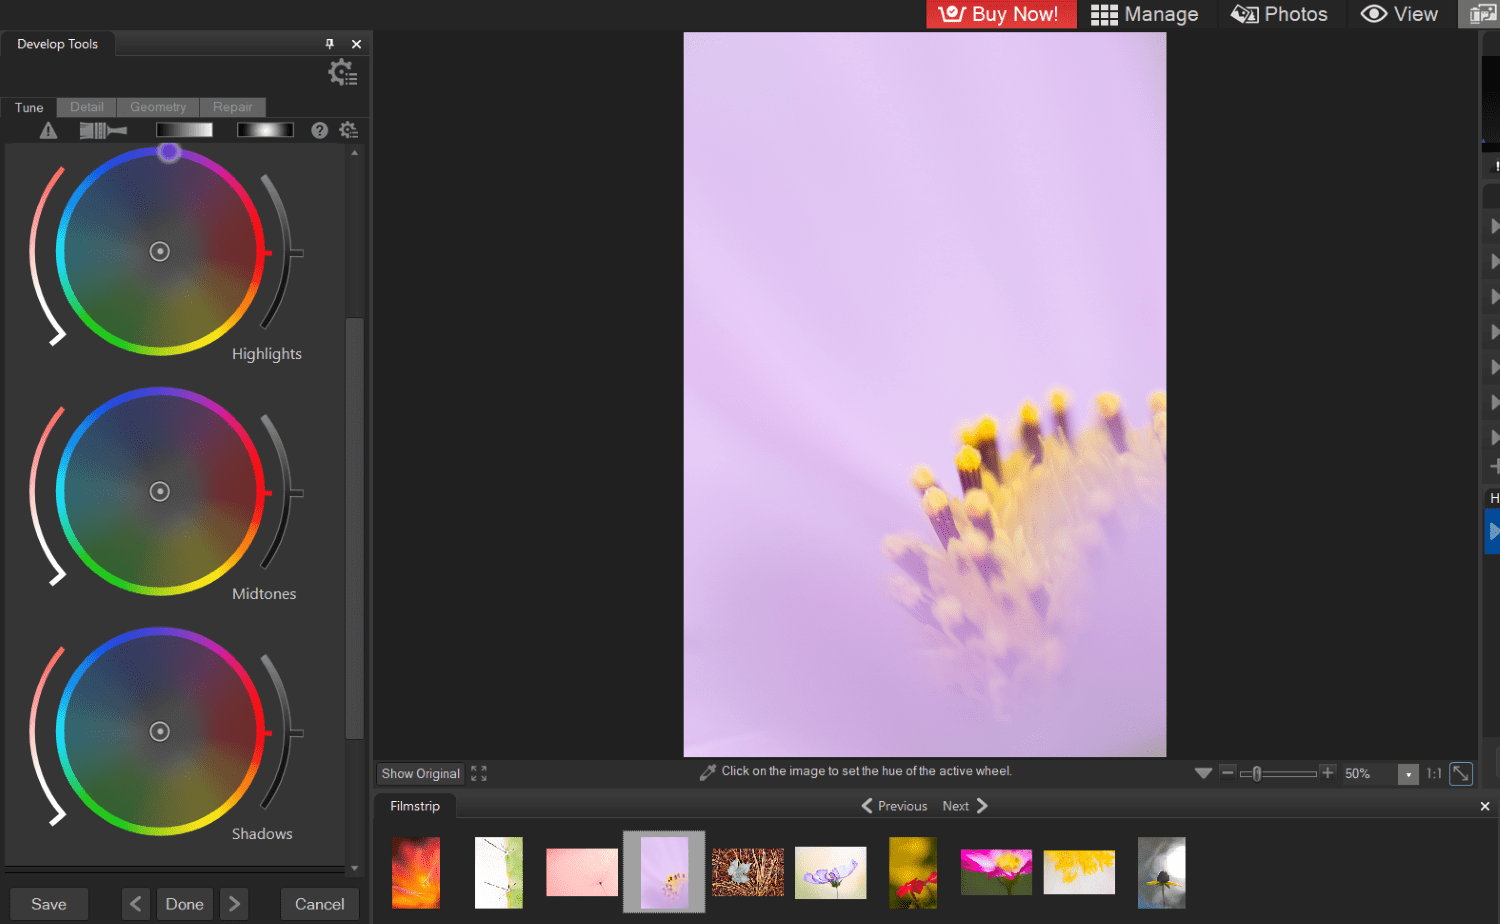 ACDSee Photo Studio Ultimate 2021 released